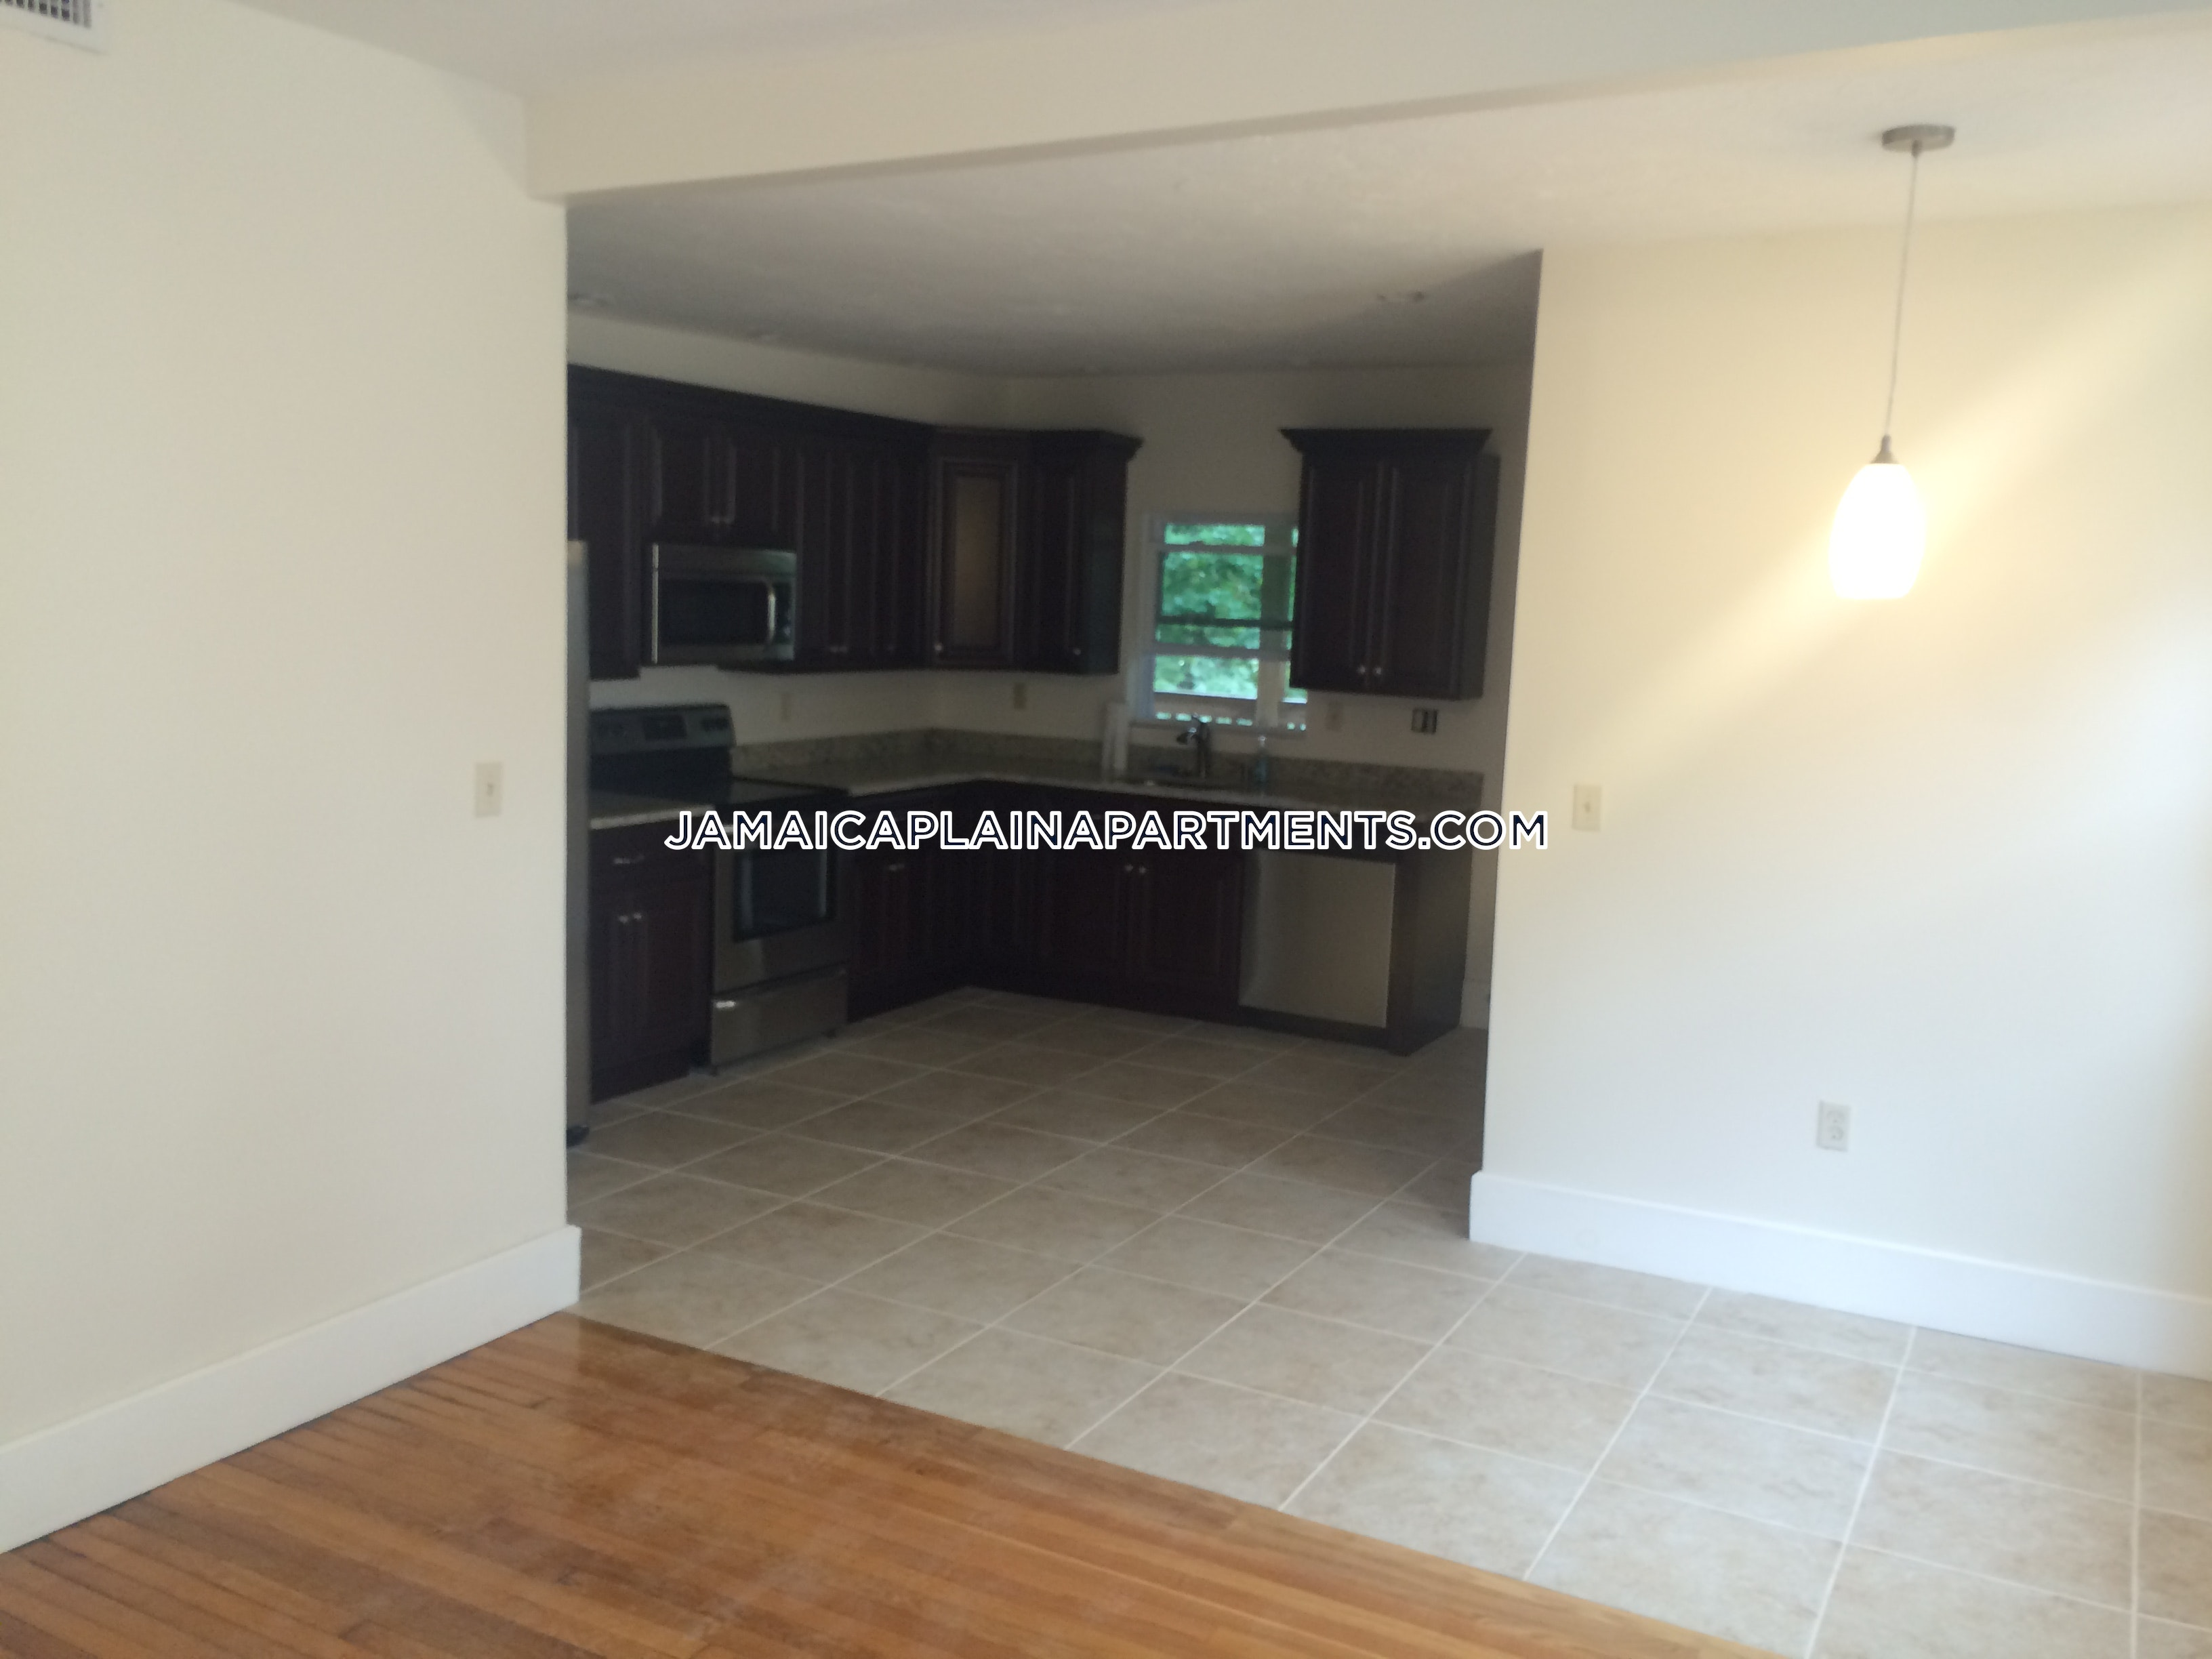 Apartments For Rent Near Stony Brook